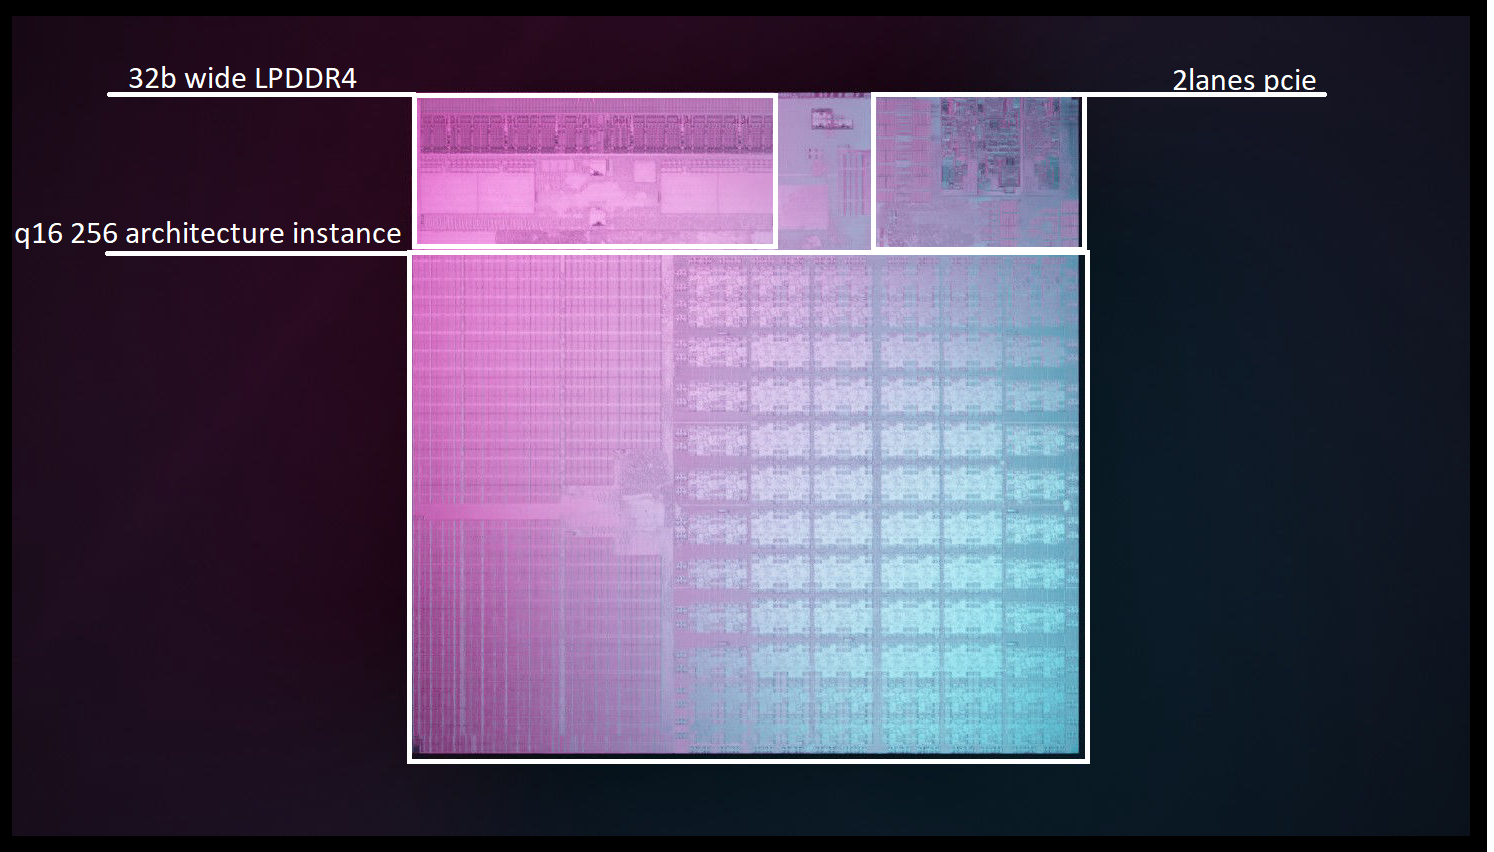 The q16 Processor comes complete with a 256 Vortex Core architecture instance, DDR and PCIE interfaces.